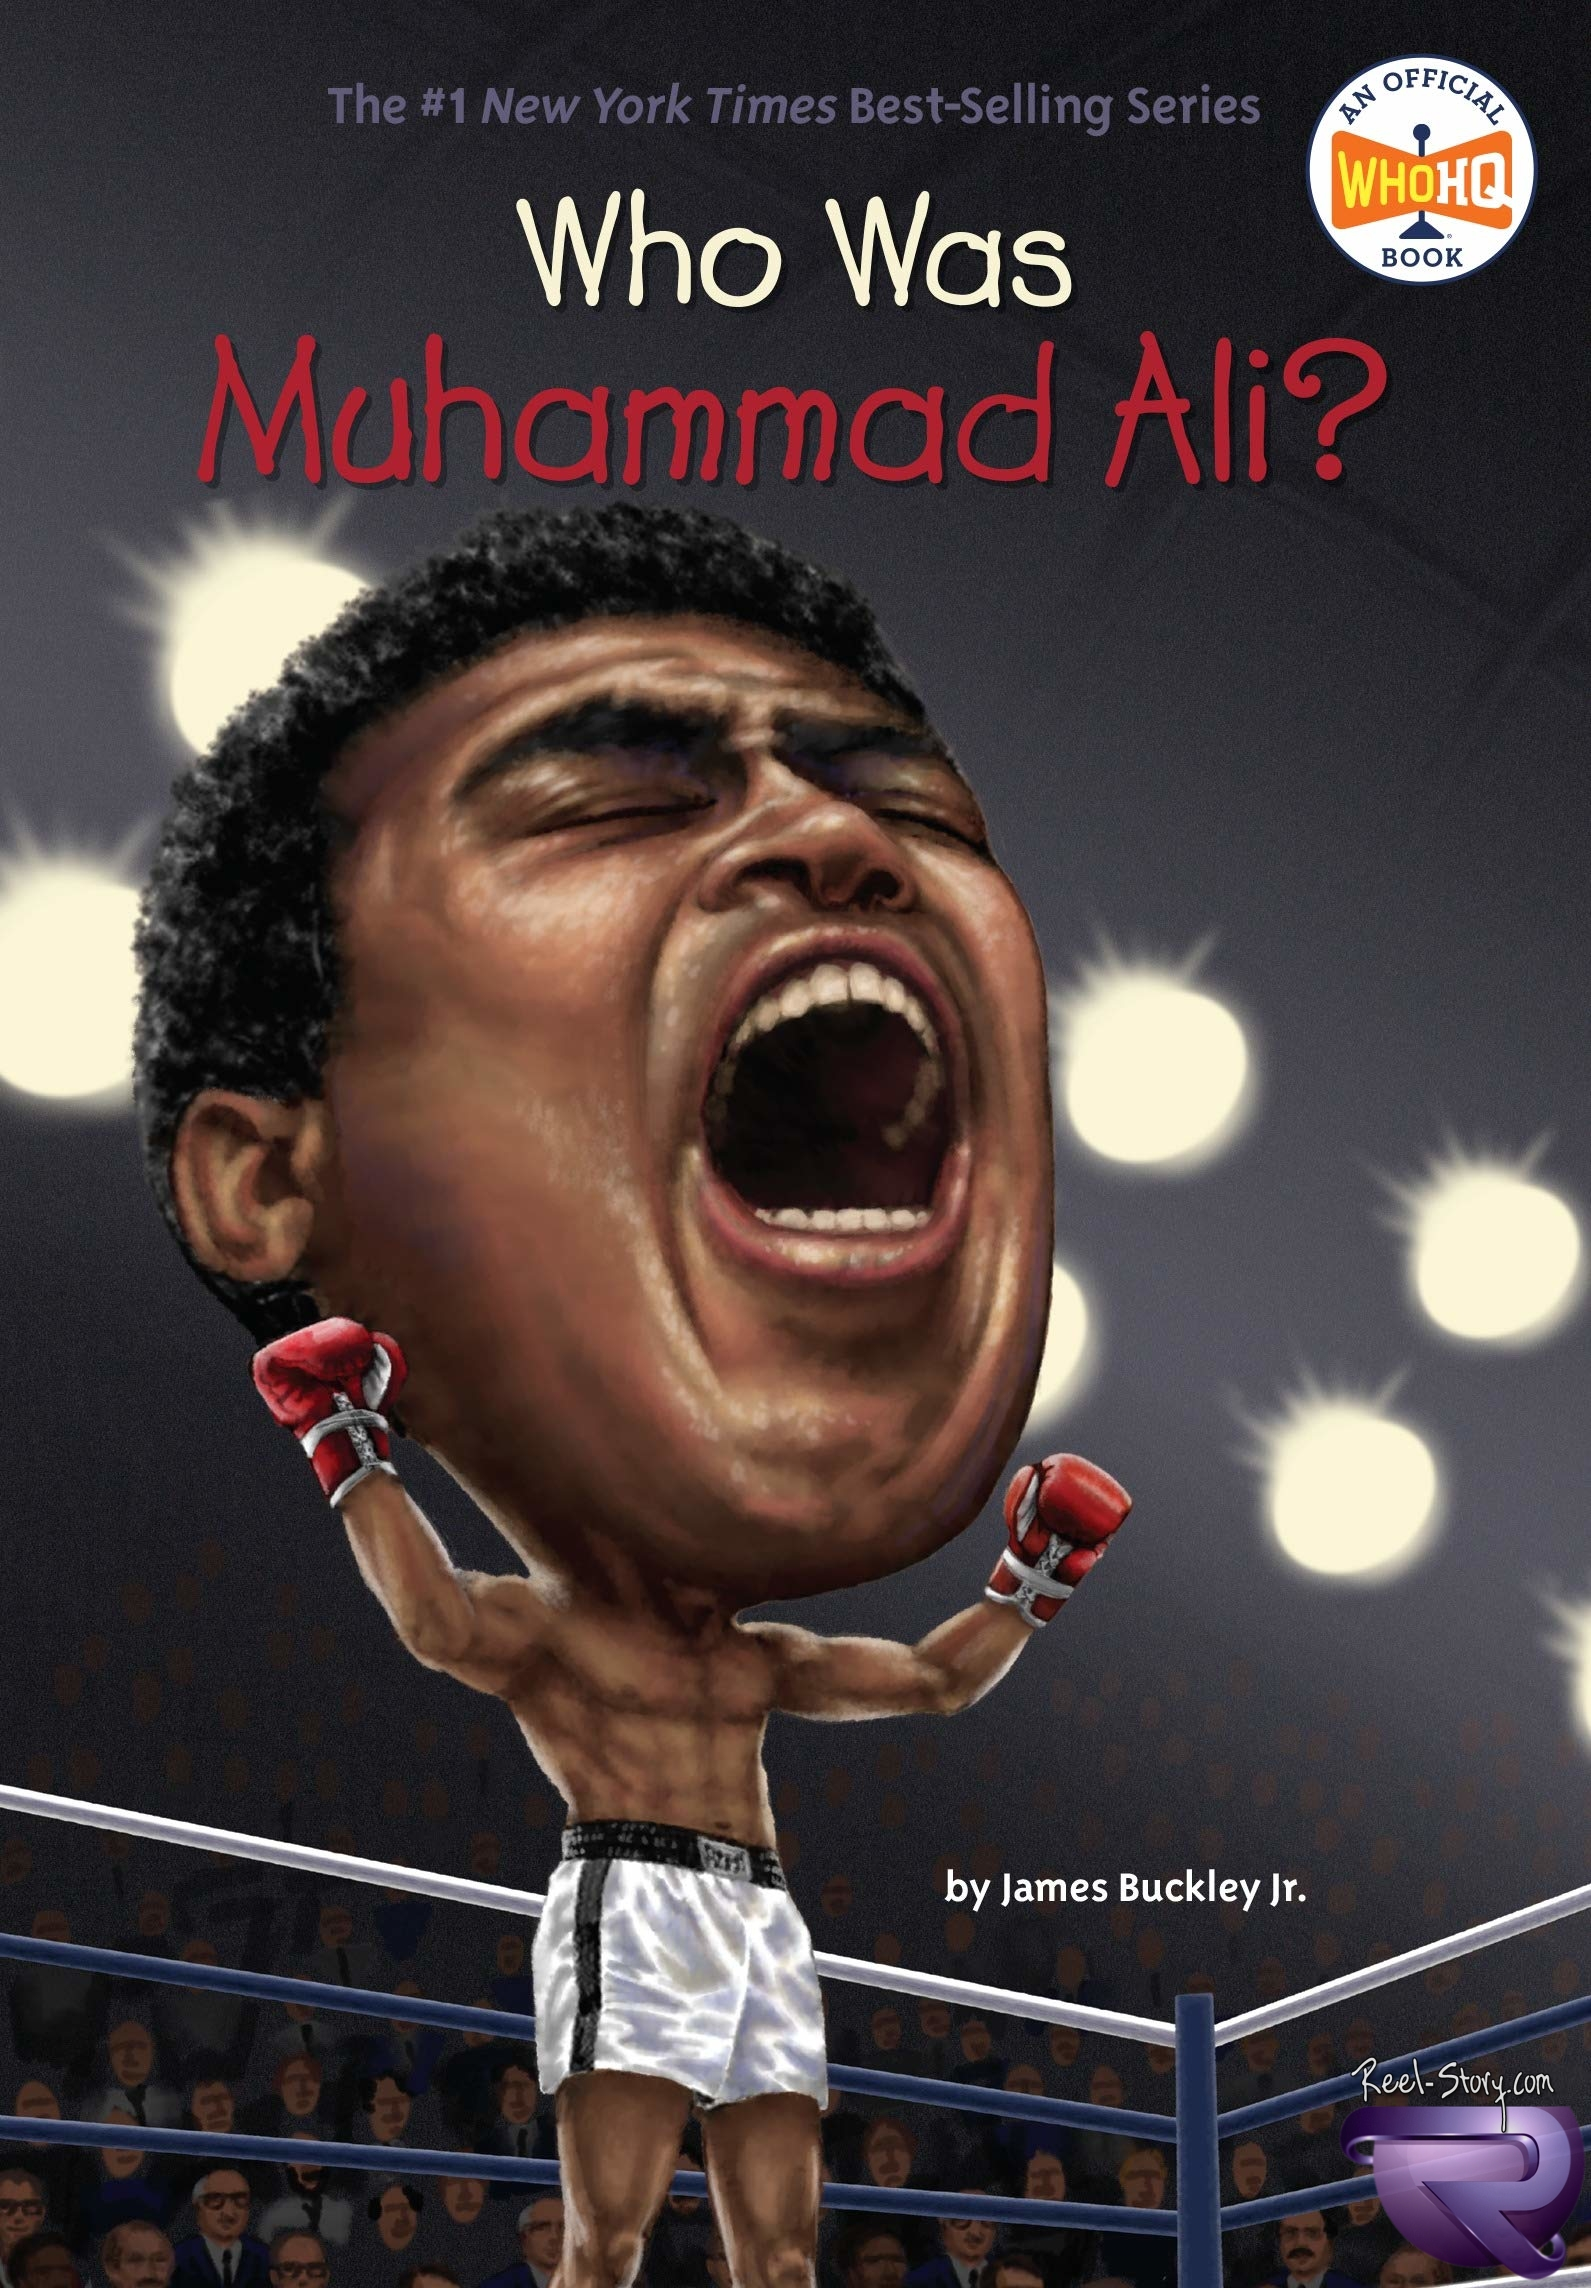 Who is Muhammad Ali? Why is he famous?